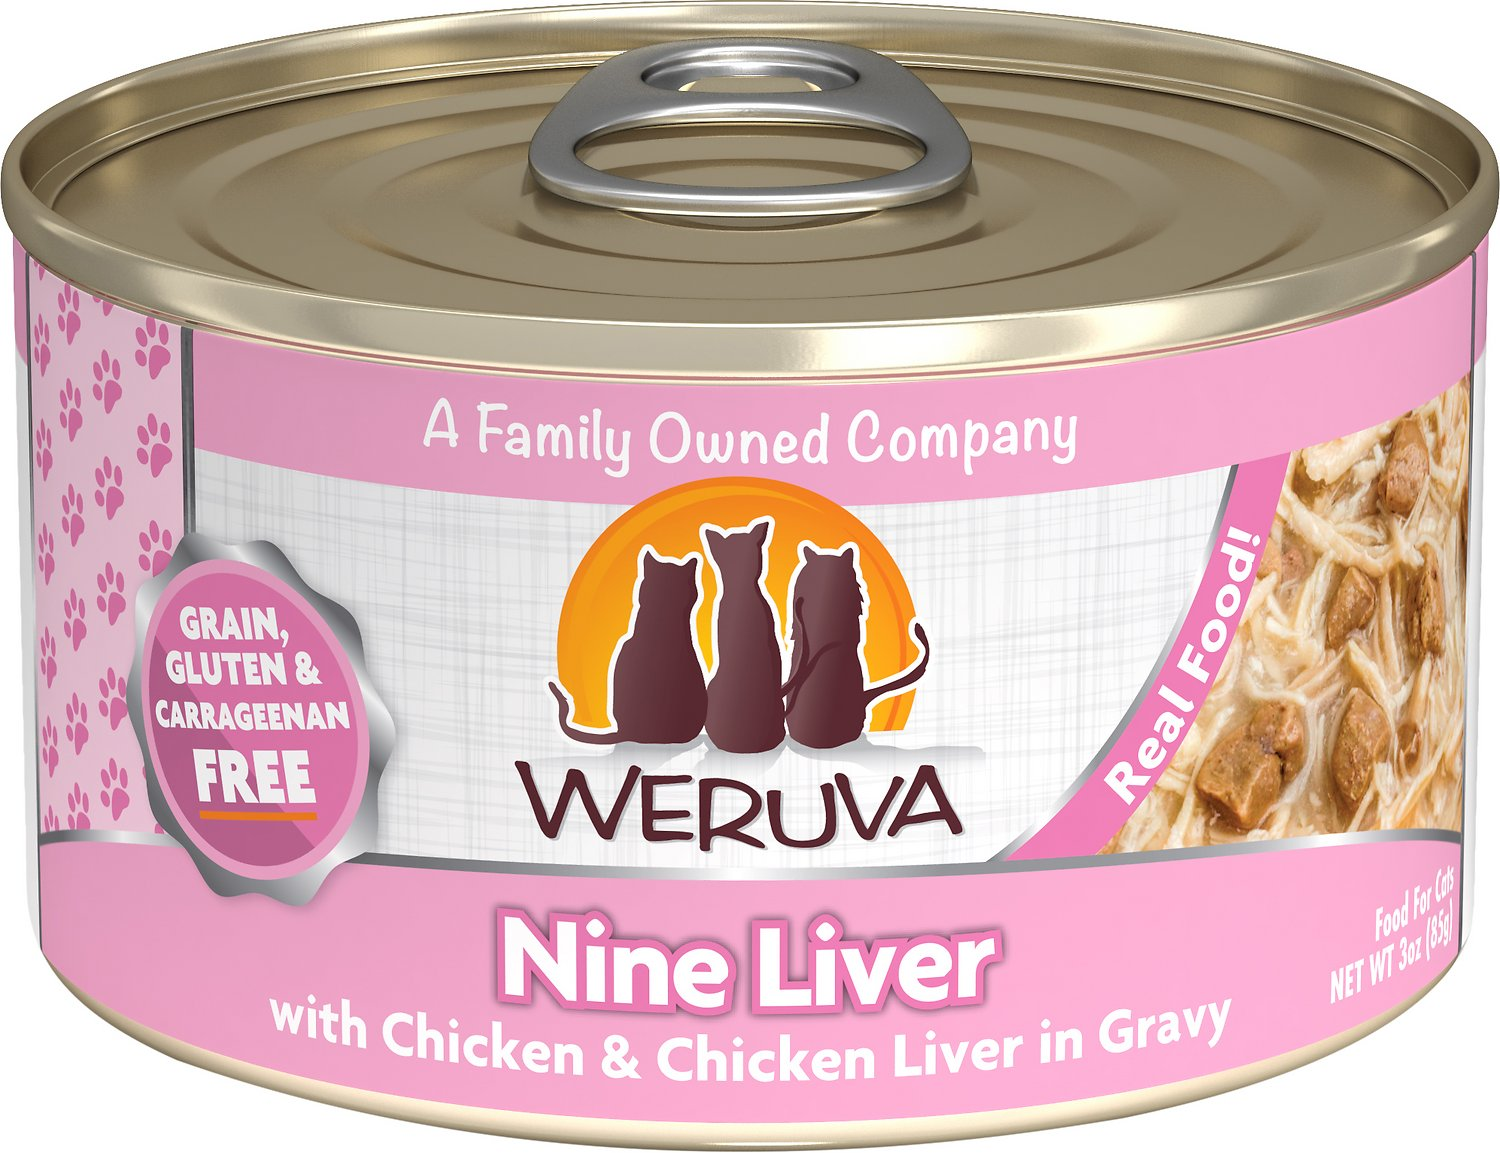 Weruva Cat Classic Nine Liver with Chicken & Chicken Liver in Gravy Grain-Free Wet Cat Food, 3-oz Size: 3-oz